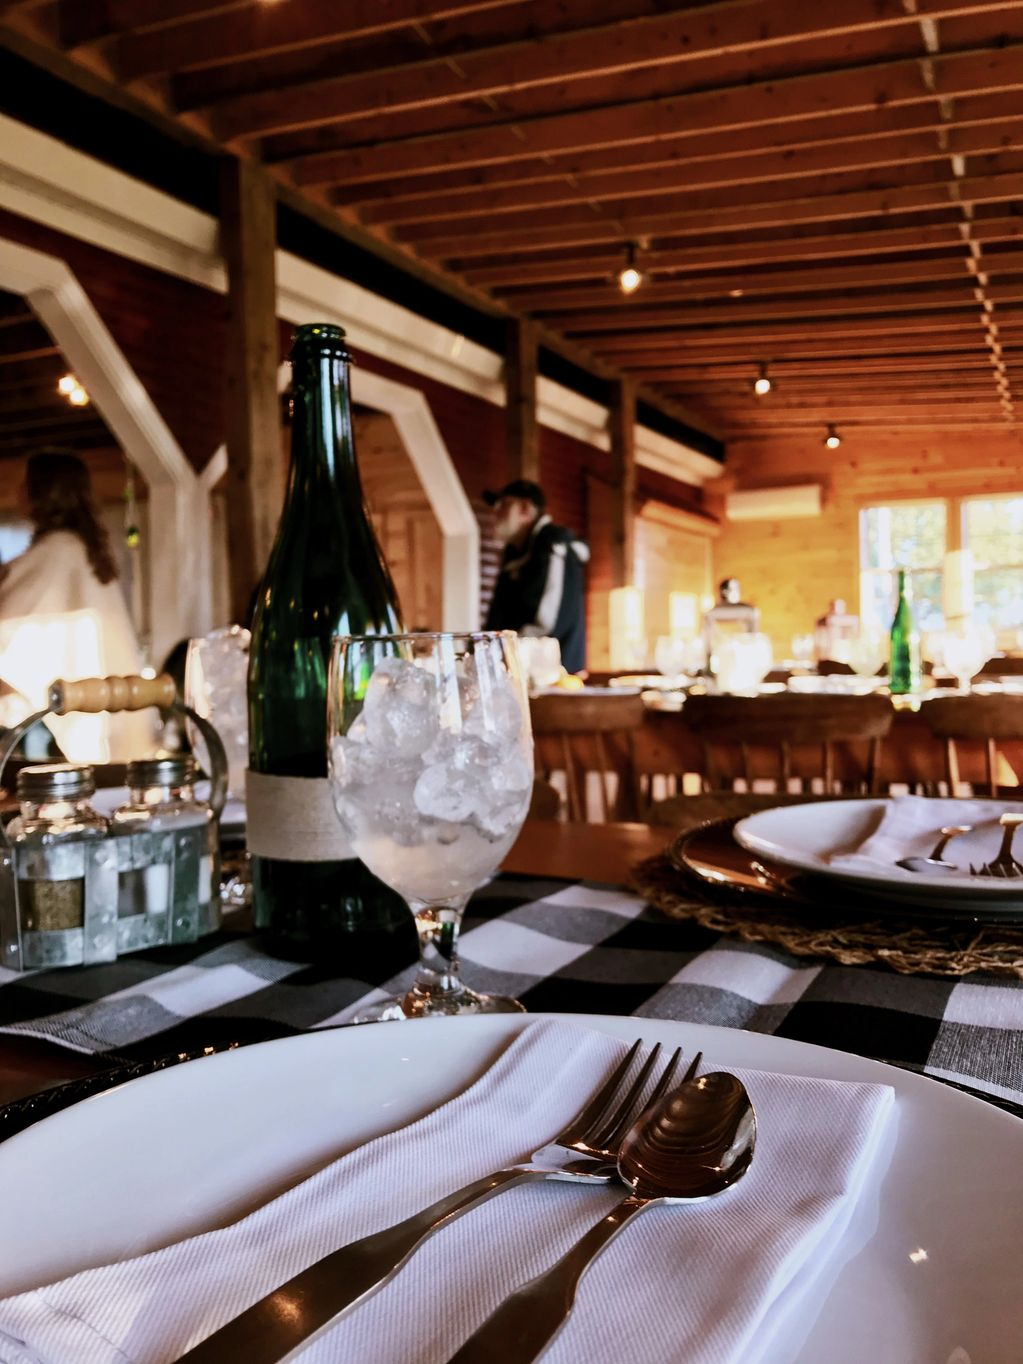 Parties, Rental, Venue, Party Venue, Private Event, Dinner Event, Host your event here, Catered, Dinner Party